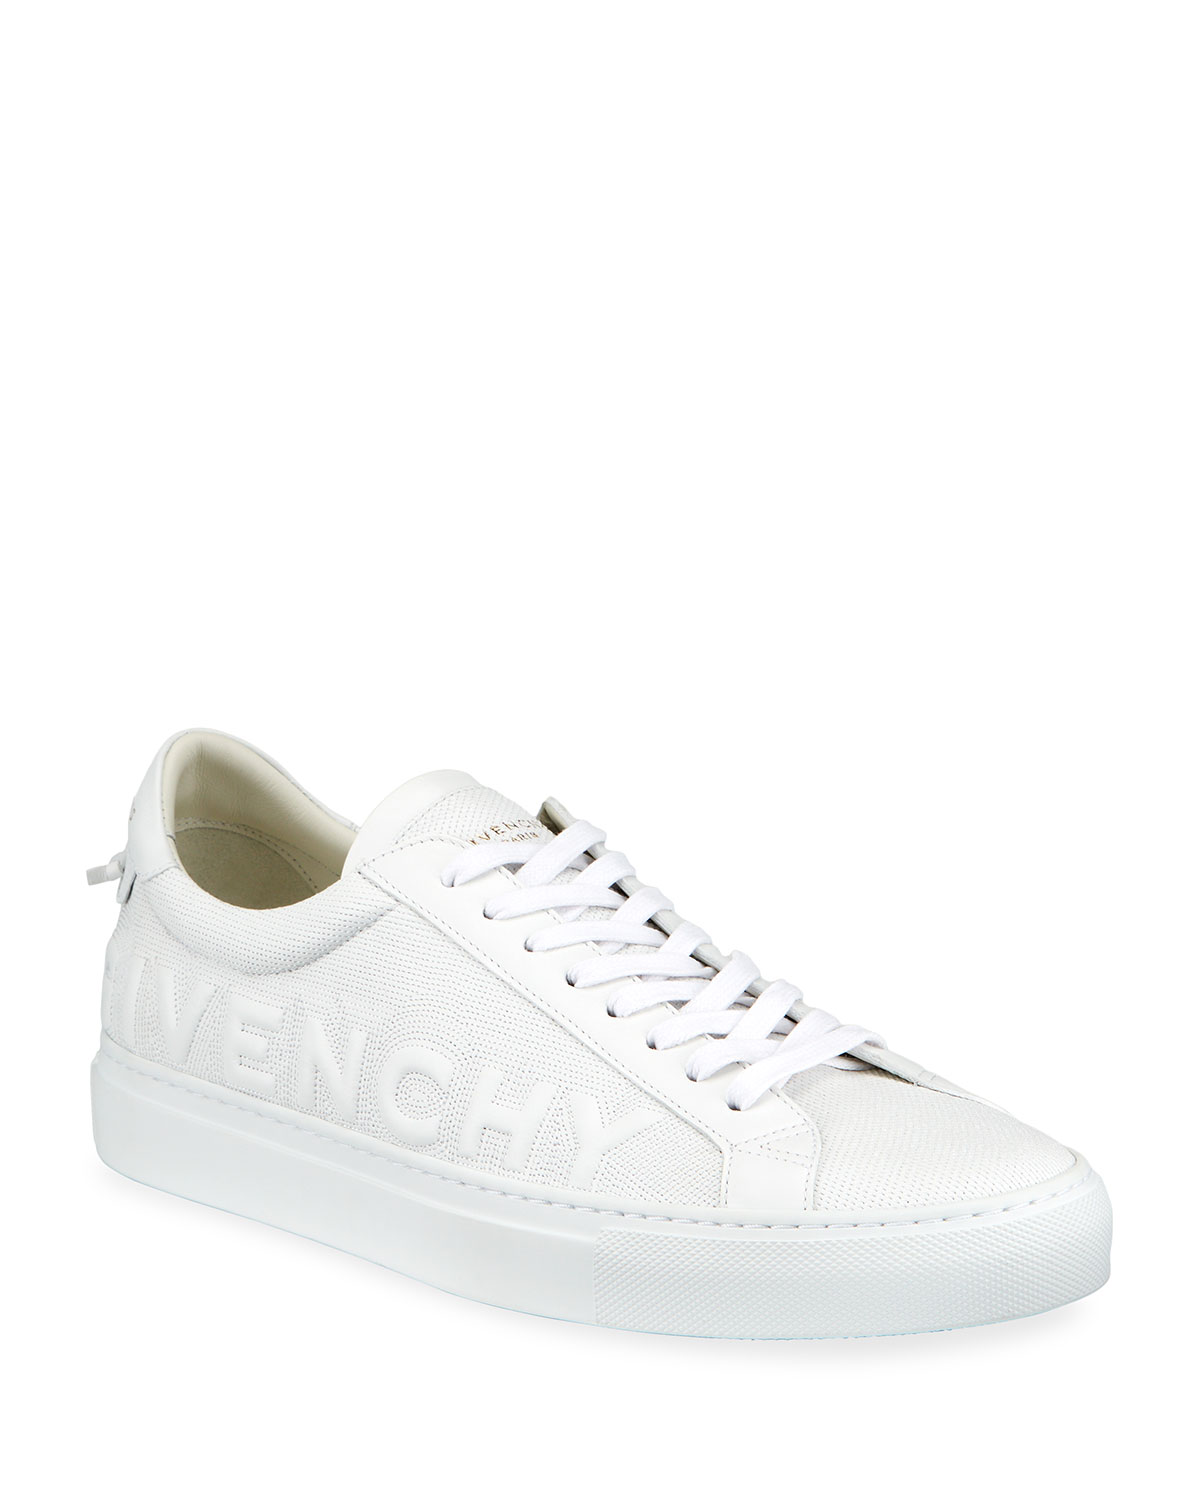 Givenchy MEN'S URBAN STREET TONAL LOGO LOW-TOP SNEAKERS